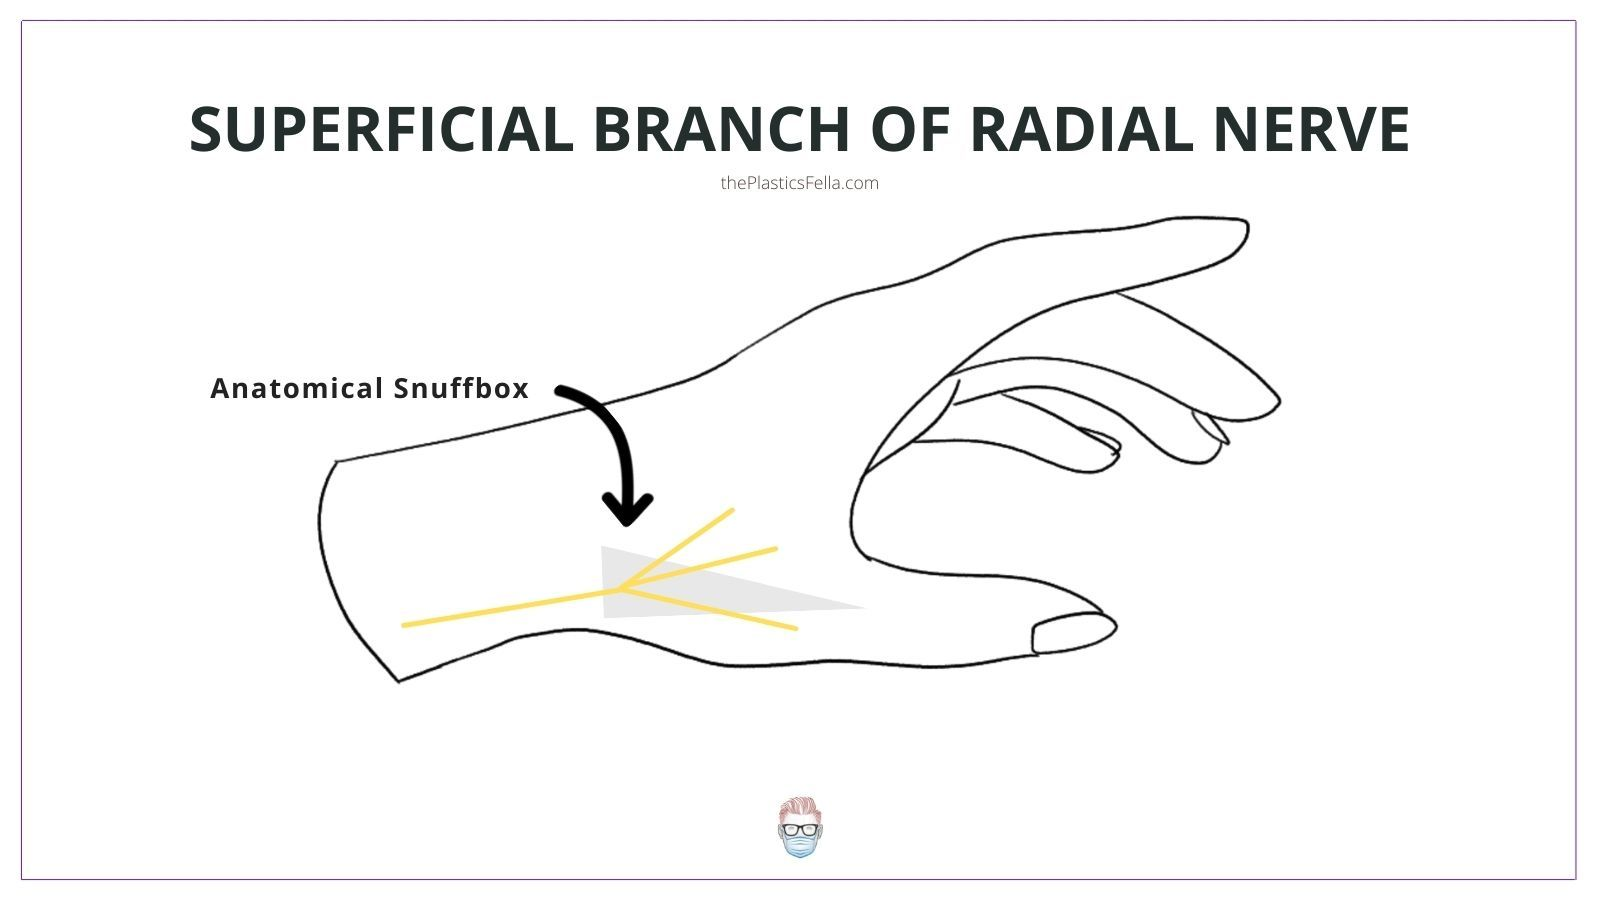 Anatomy and Location of the Superficial Branch of the Radial Nerve (SBRN)